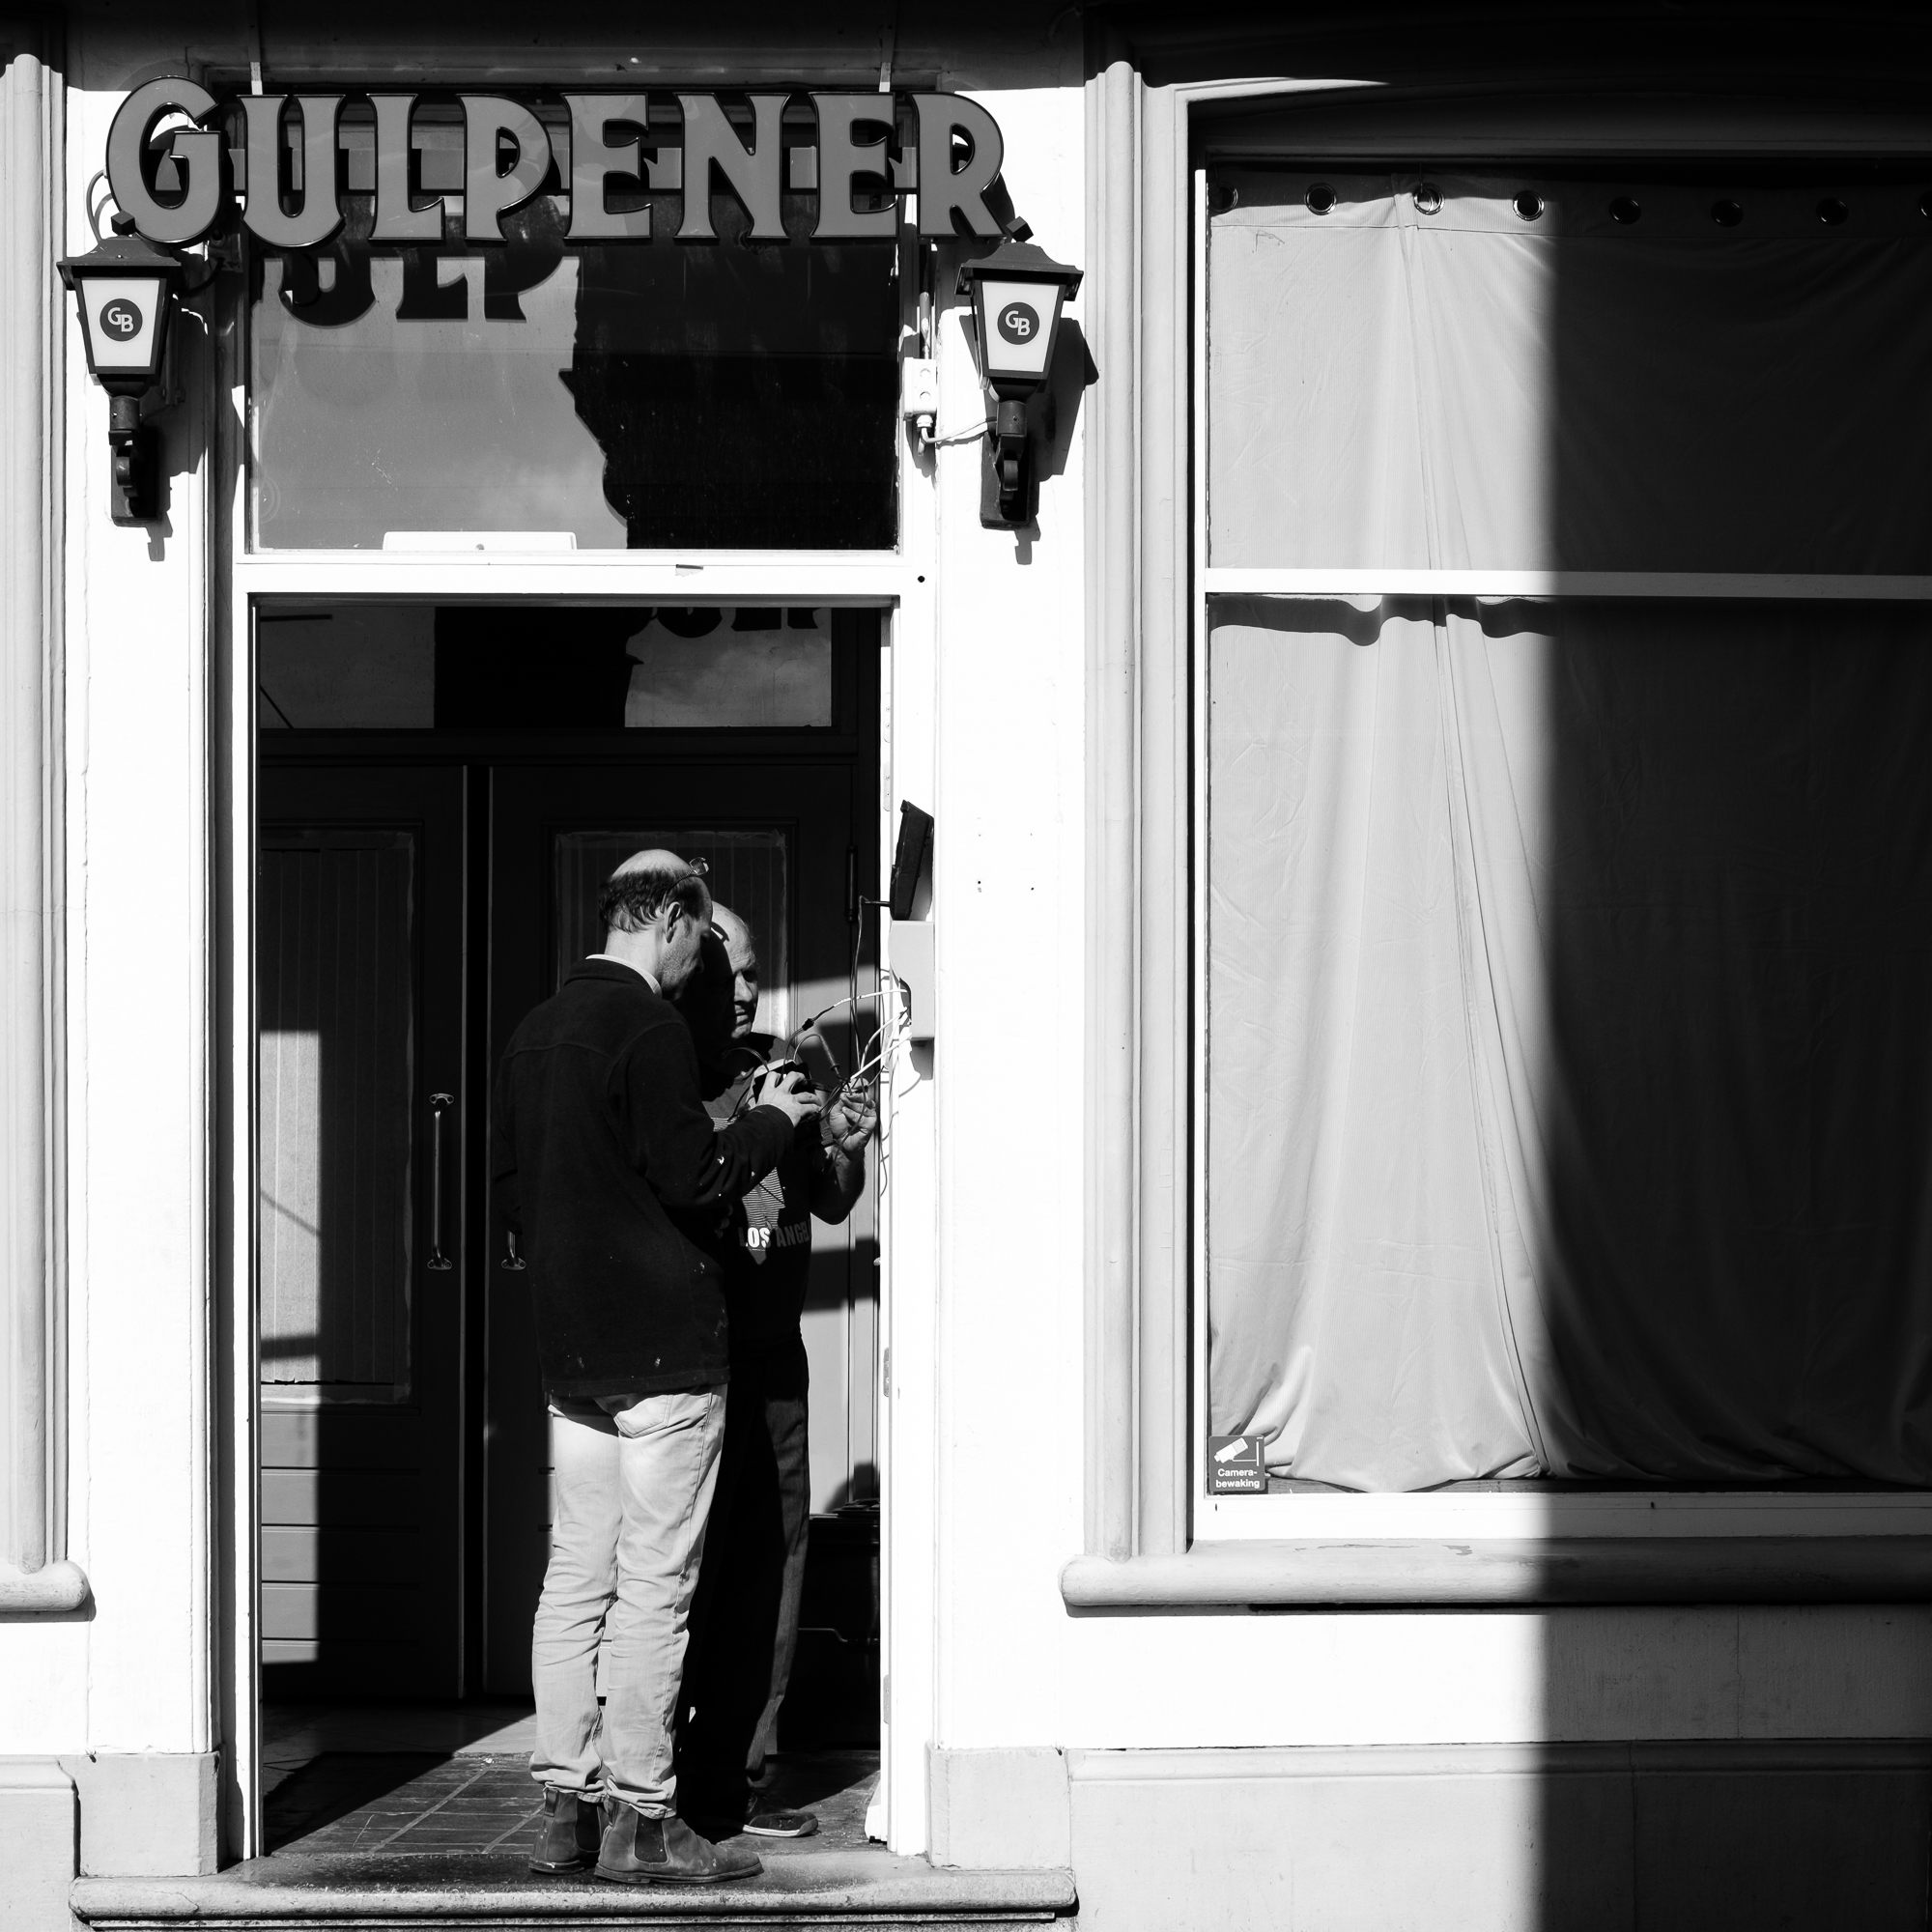 Two men working on electricity at a bar with a Gulperner sign